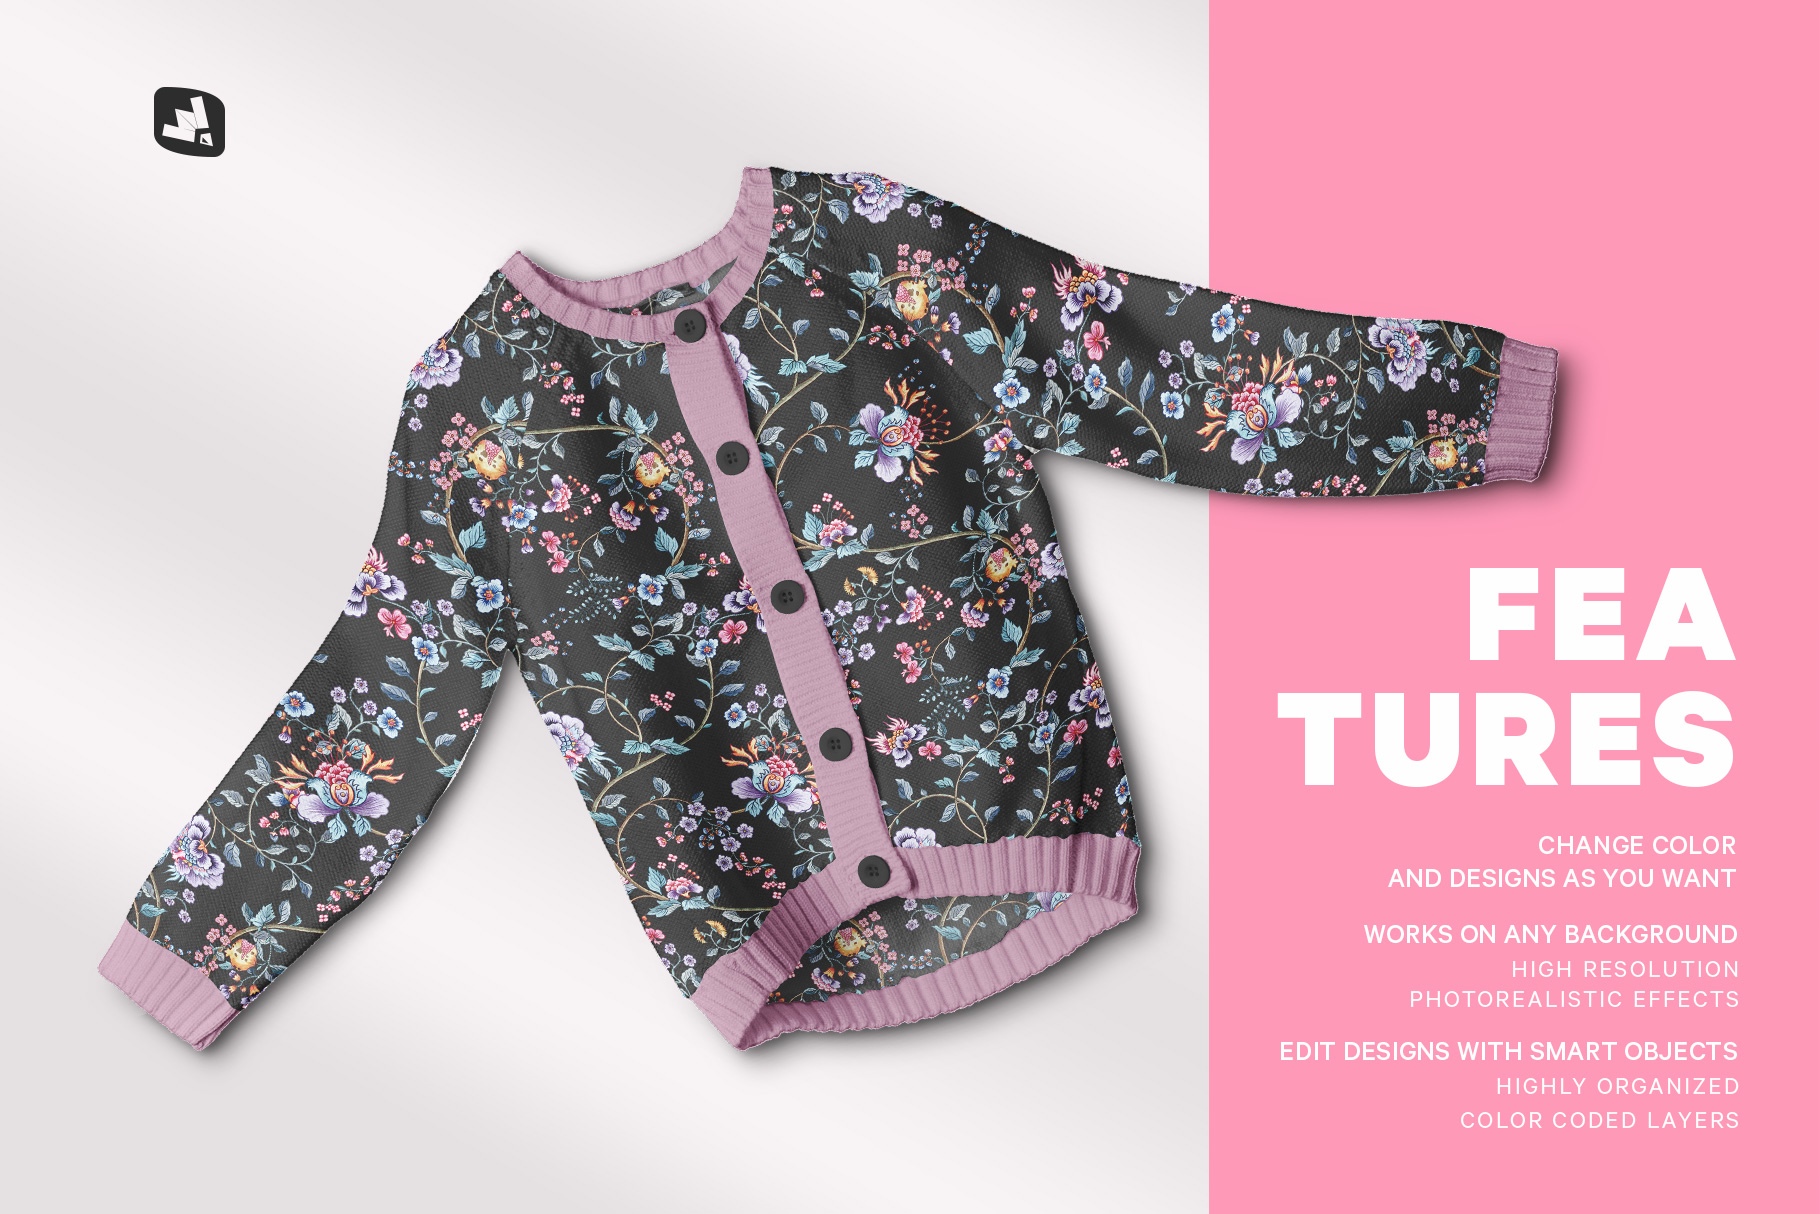 features of the top view baby sweater mockup